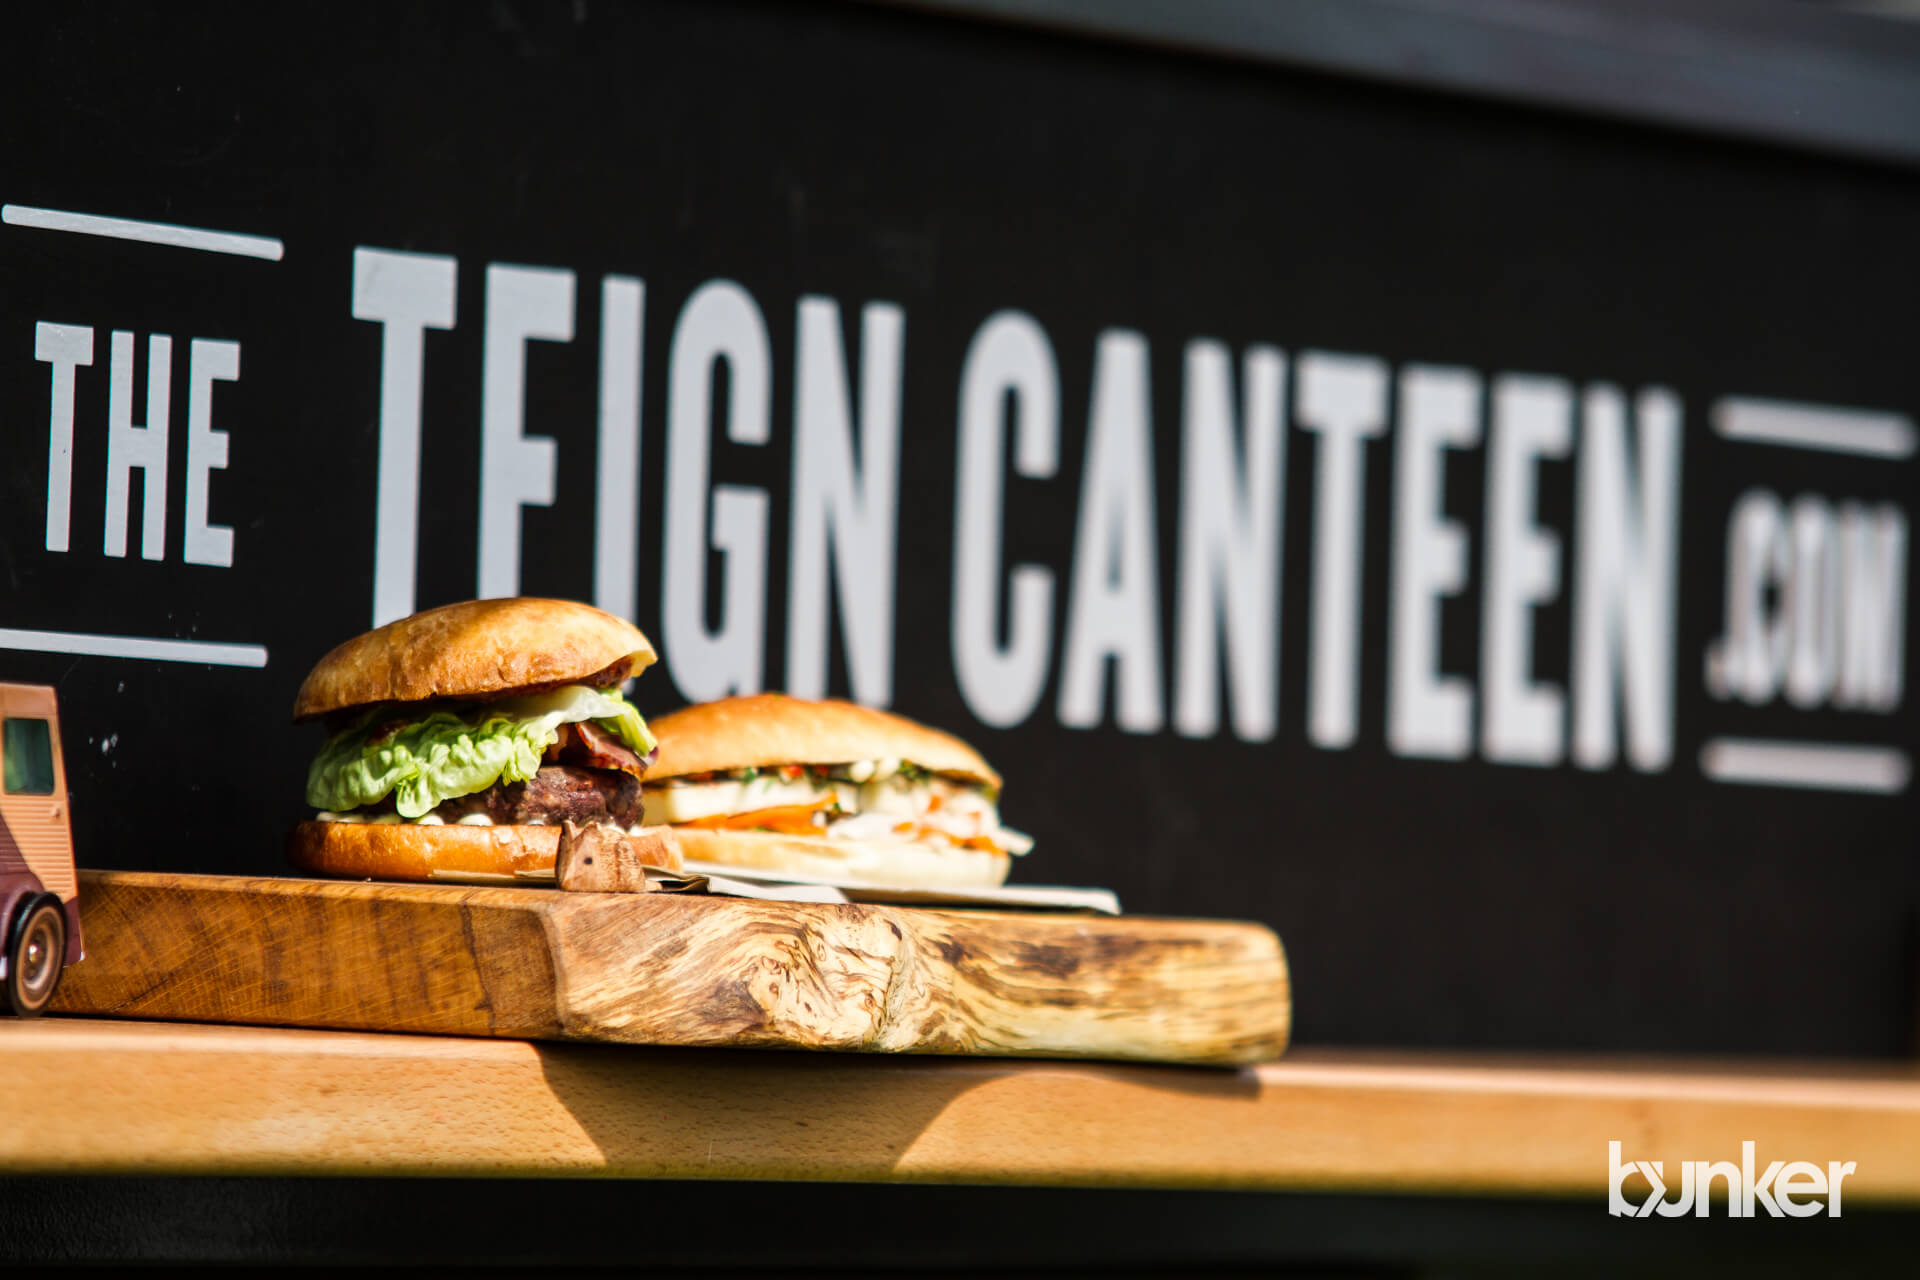 One of a kind food truck, The Teign Canteen